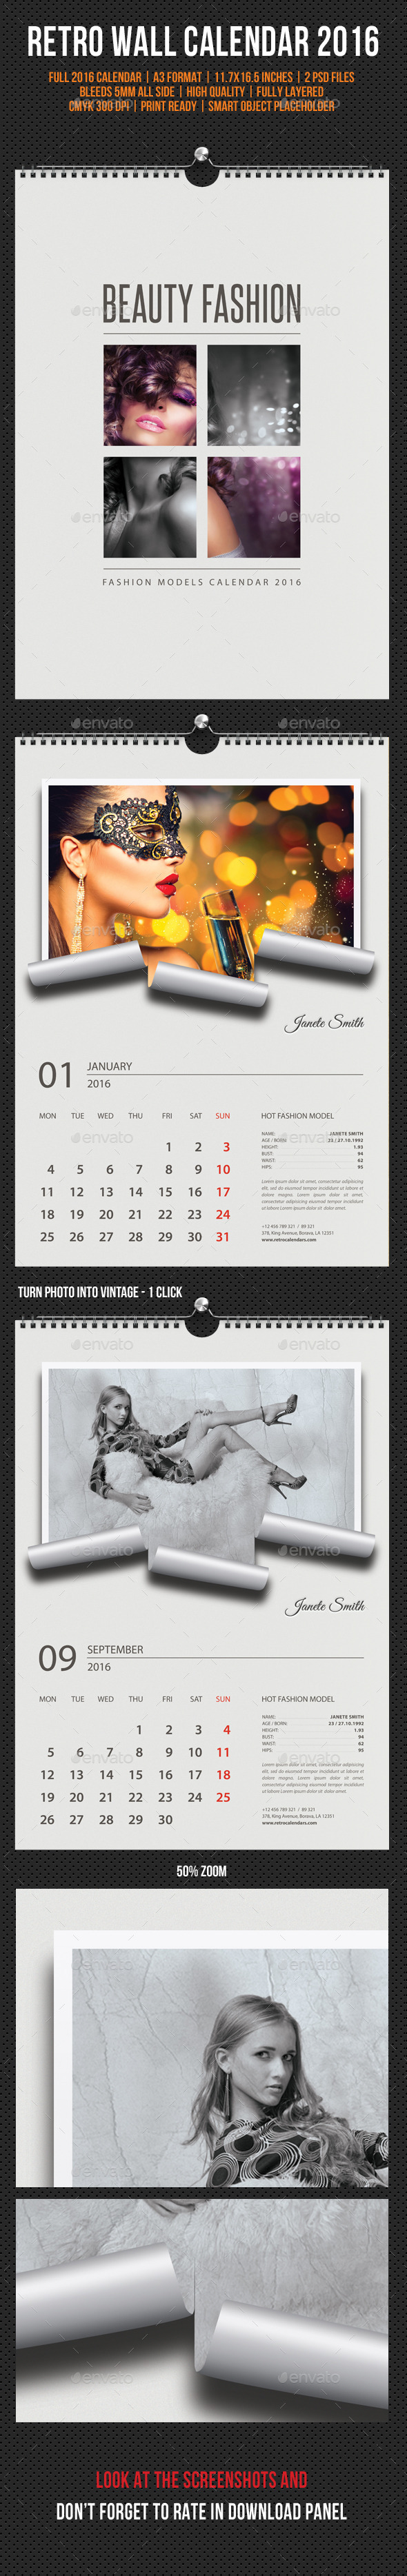 GraphicRiver Wall Calendar 2016 Retro Photo V02 11827782